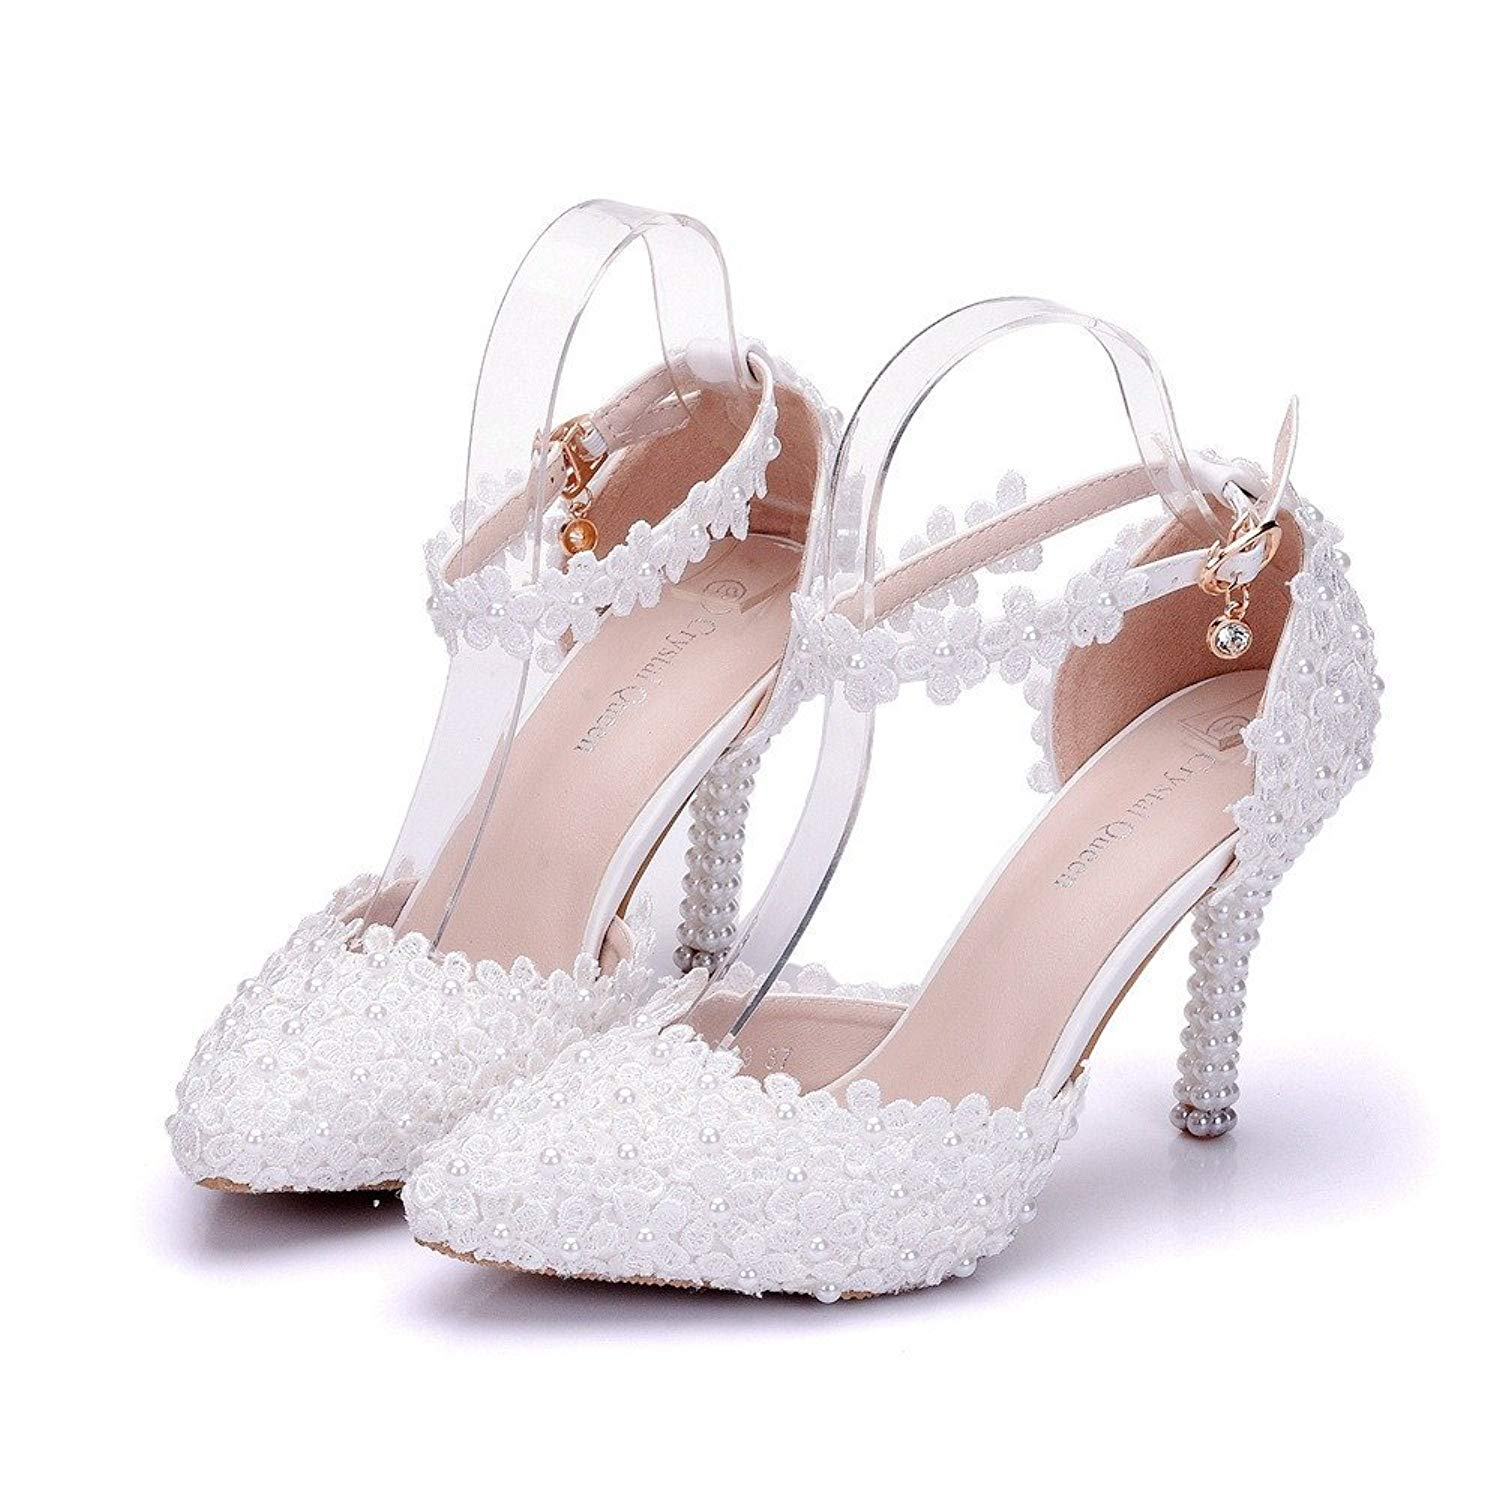 356b4a25860 Get Quotations · HYP Wedding Women Shoes Wedding Shoes Women Pumps Closed  Toe Wedding Party Court Shoes